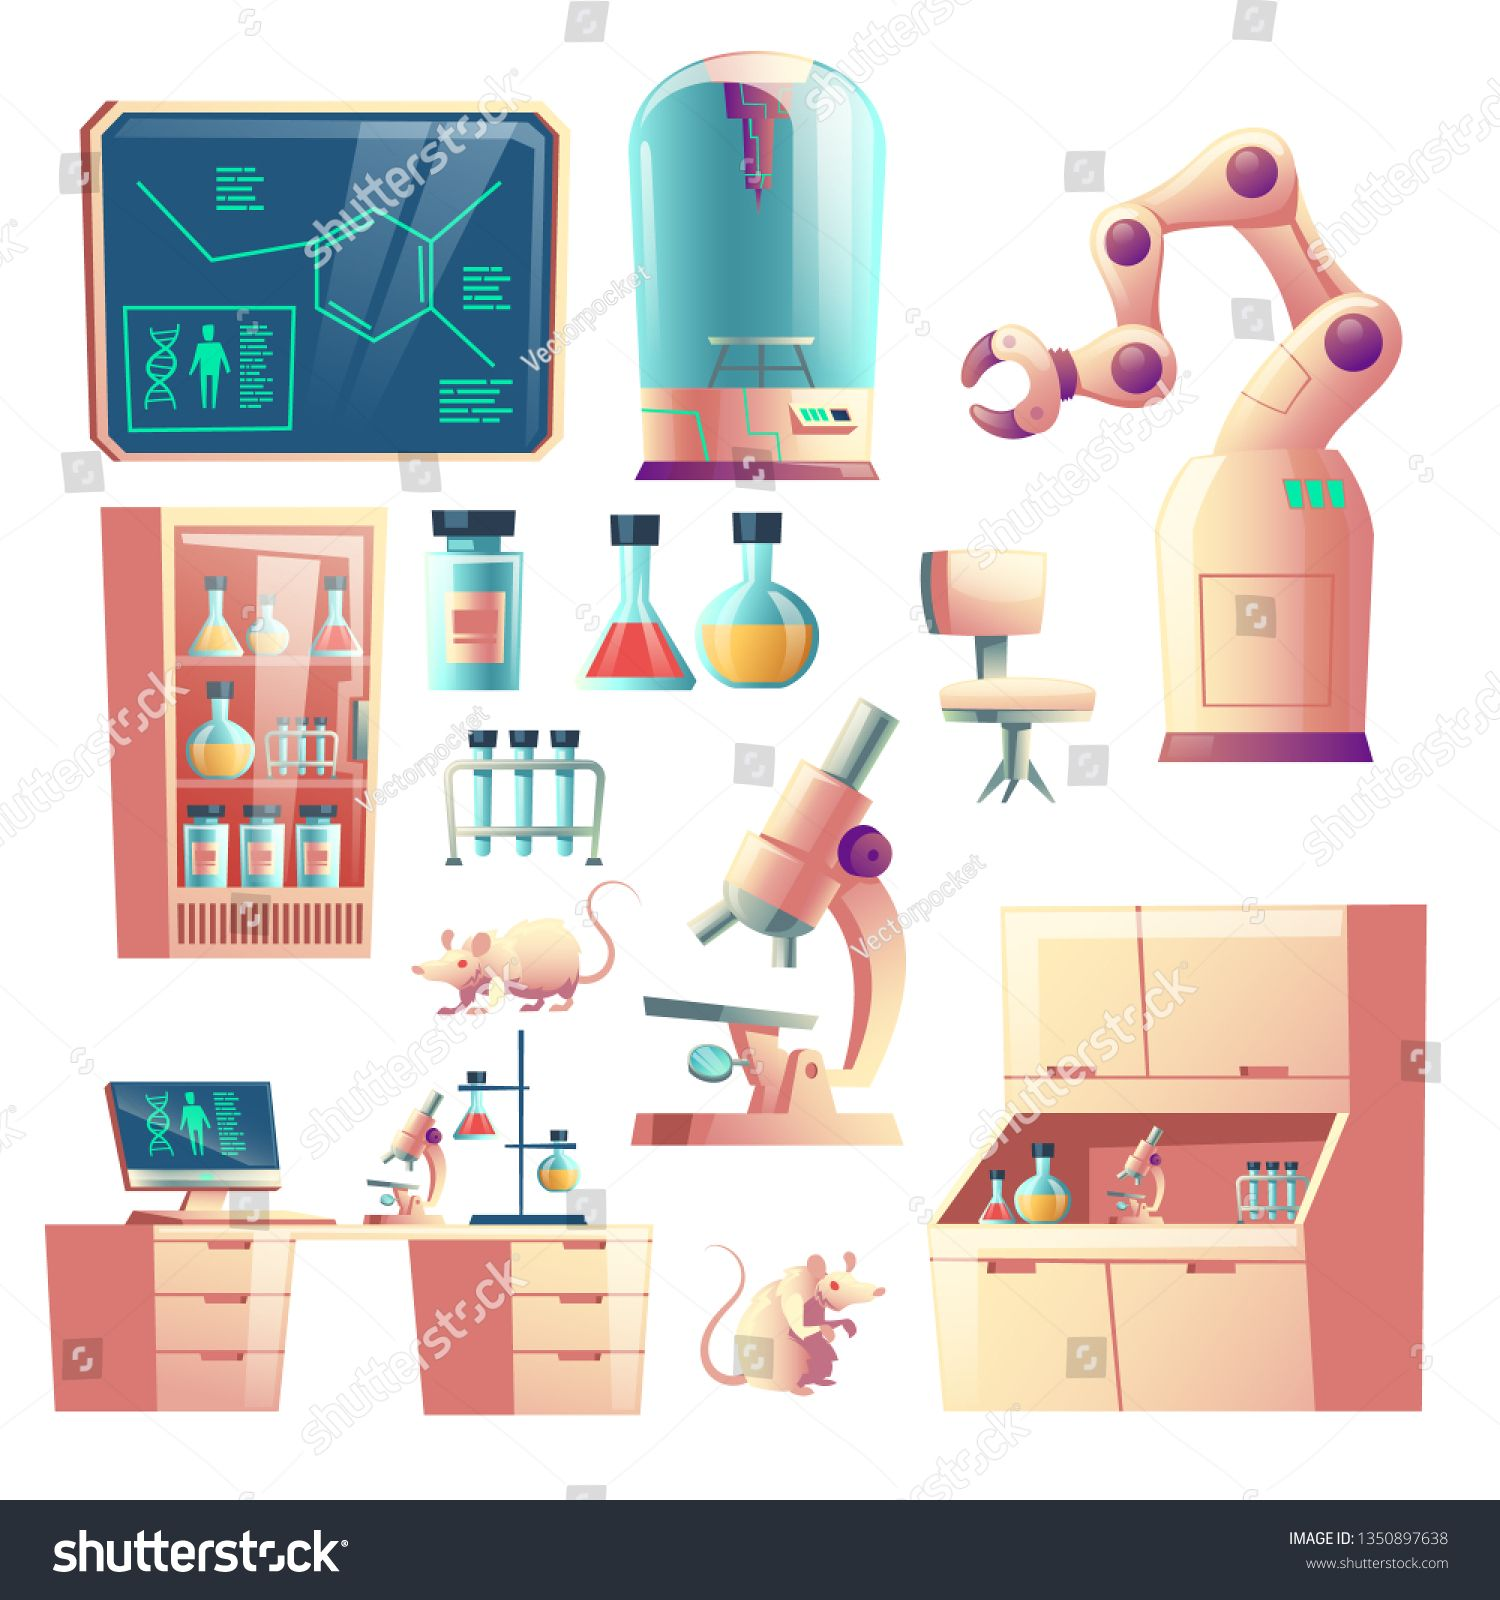 science genetic laboratory equipment glassware and tools cartoon vector set isolated on white background labor flask illustration glass flask cartoons vector pinterest